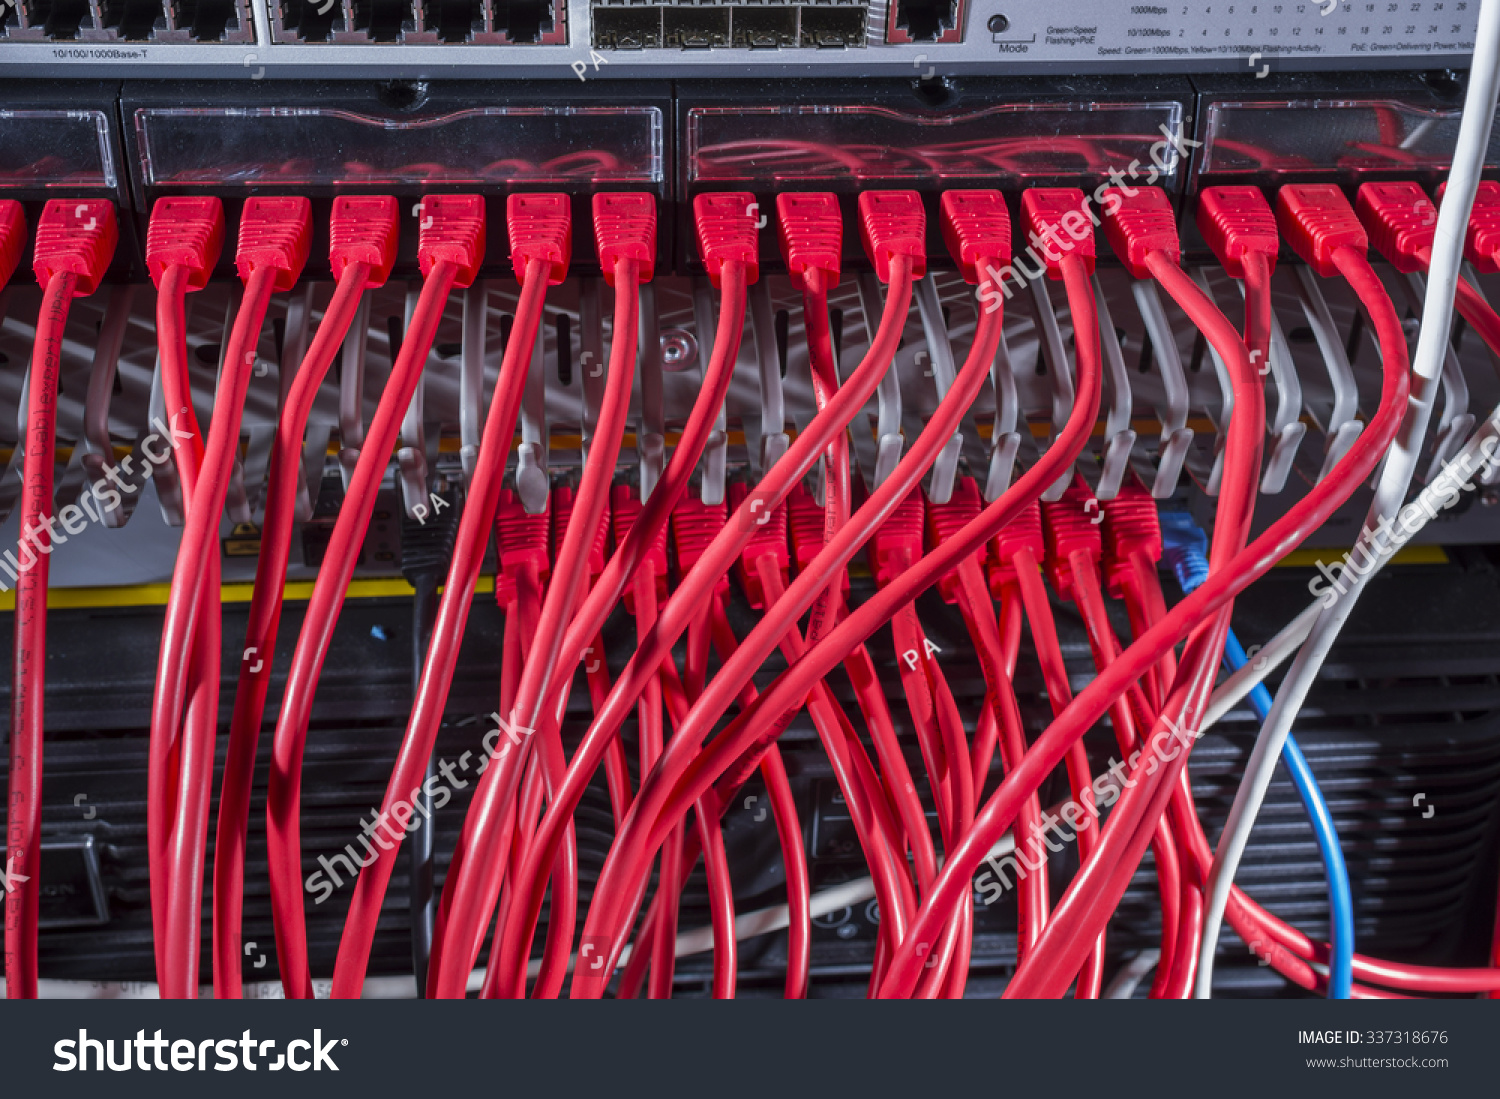 Internet Wires Server Stock Photo Edit Now 337318676 Shutterstock Wiring Closet In